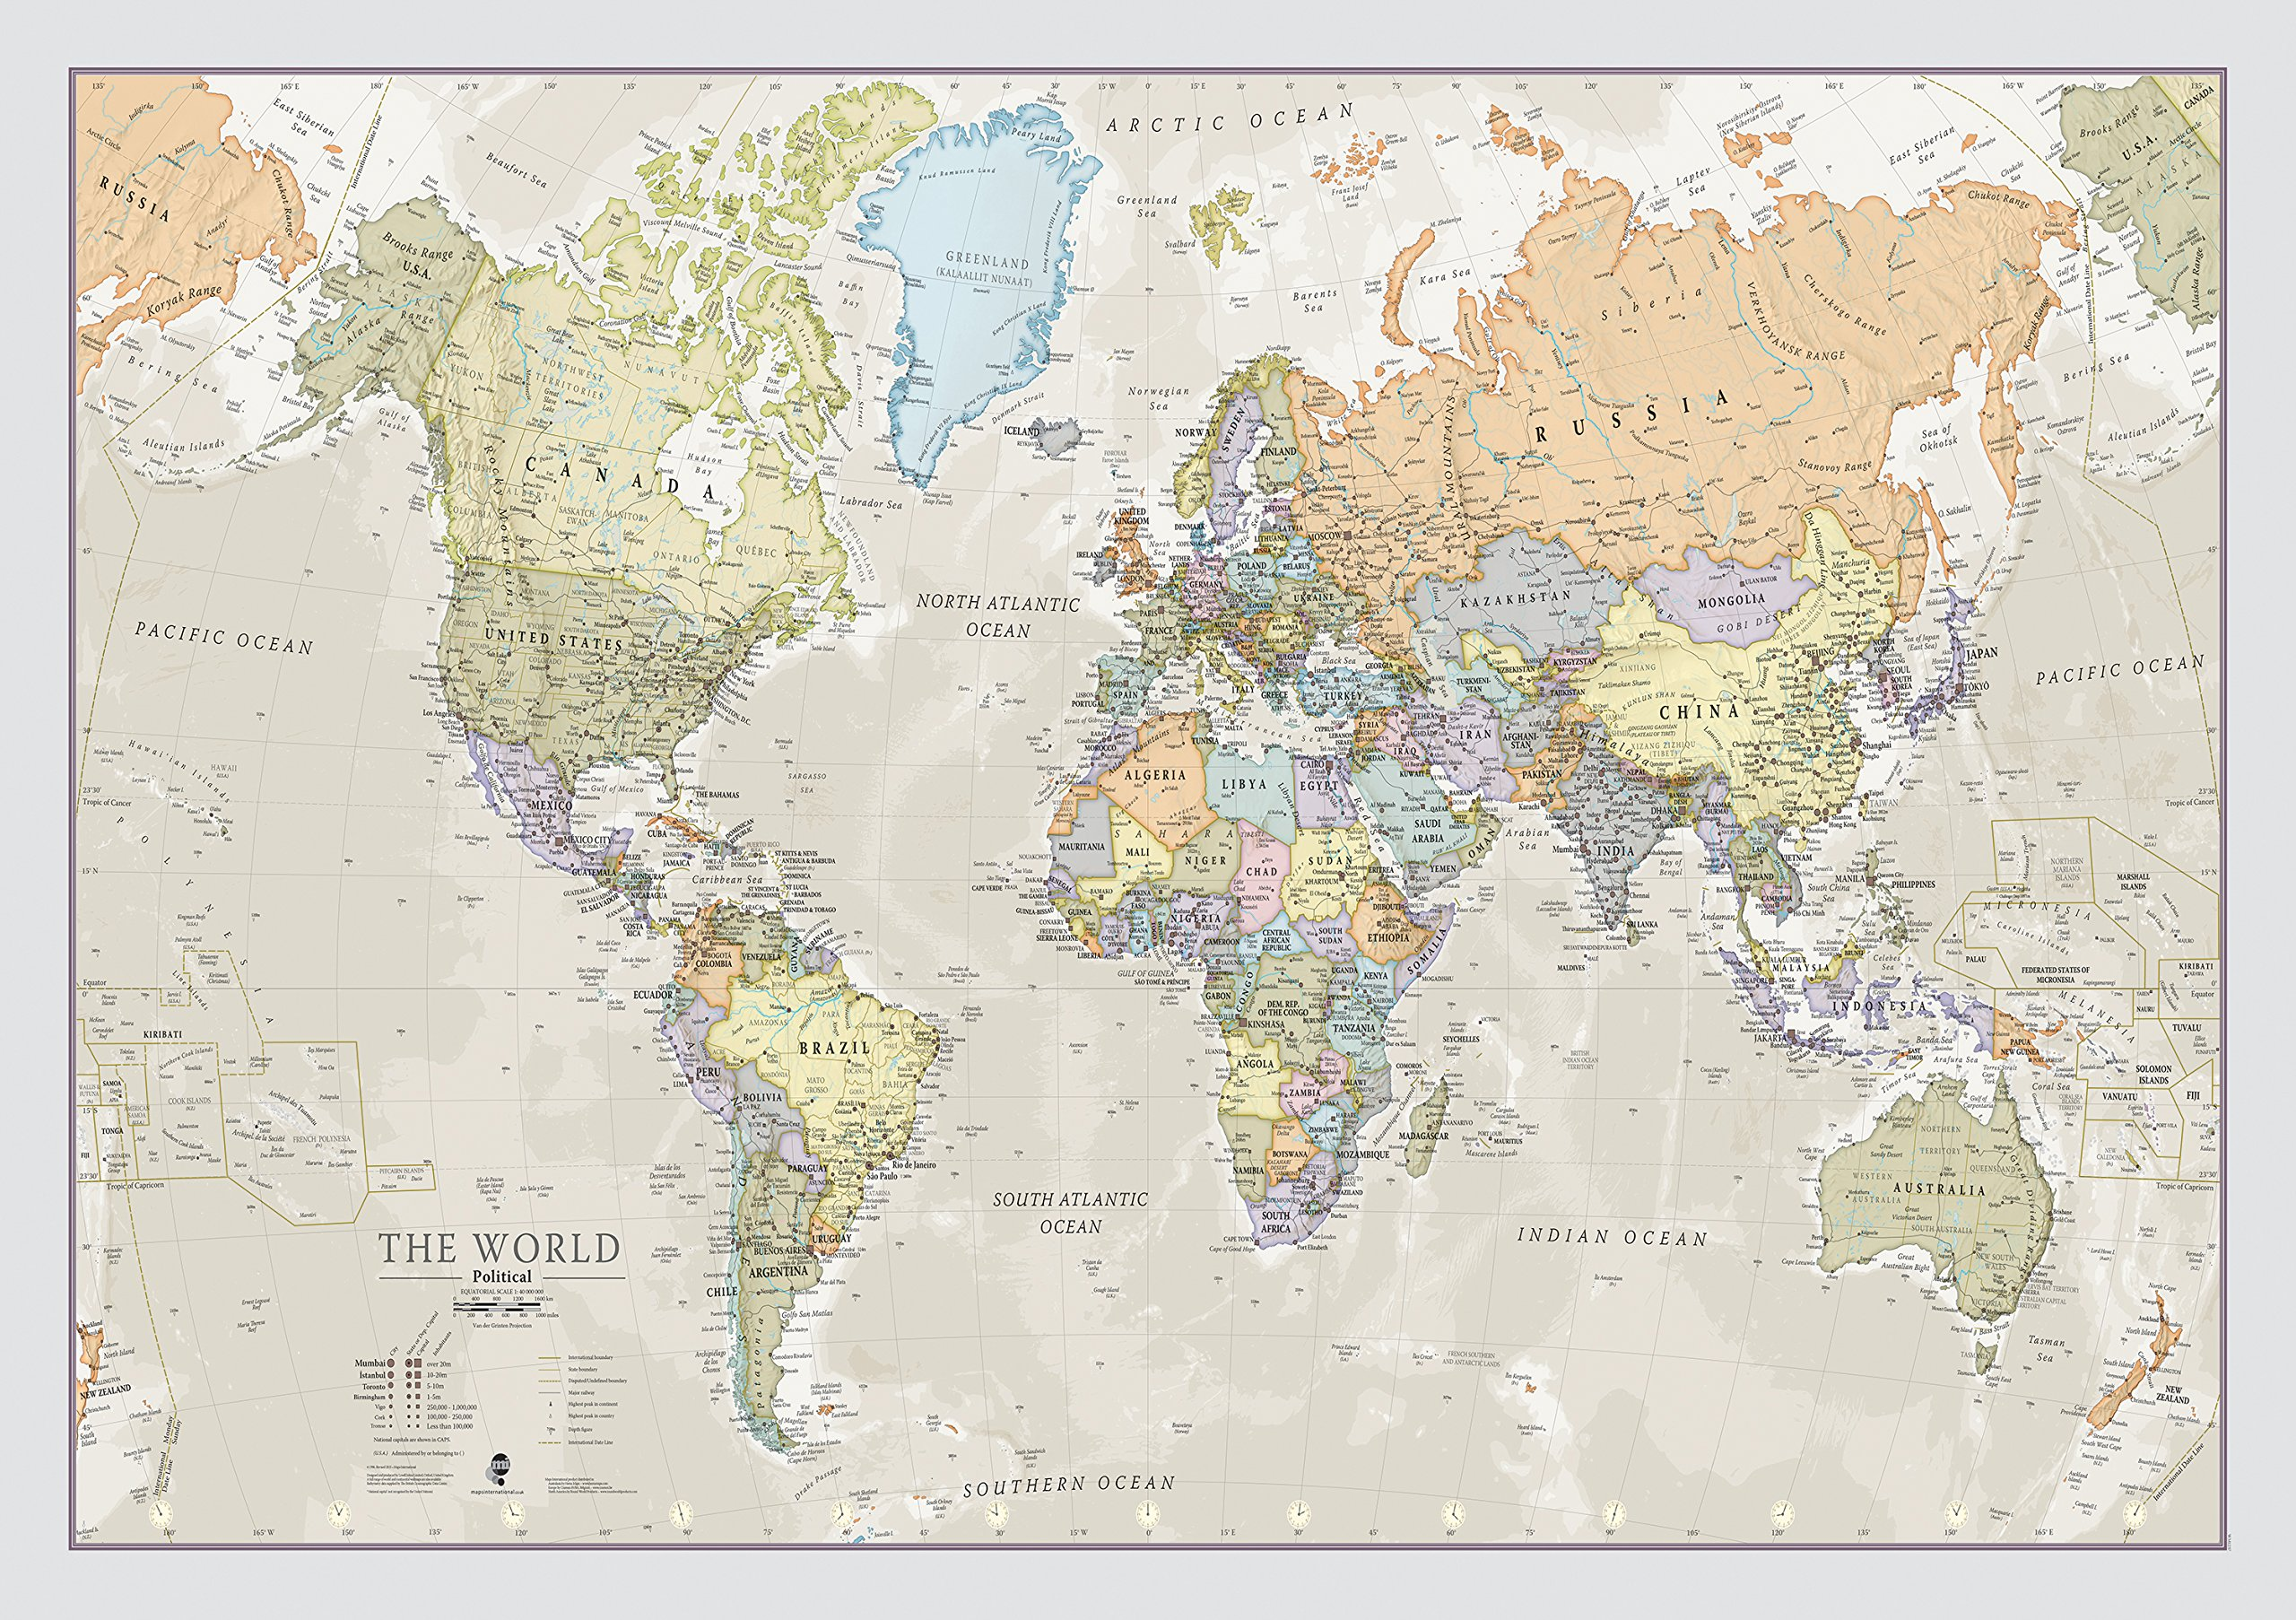 Coal World Map.Cheap Coal World Map Find Coal World Map Deals On Line At Alibaba Com